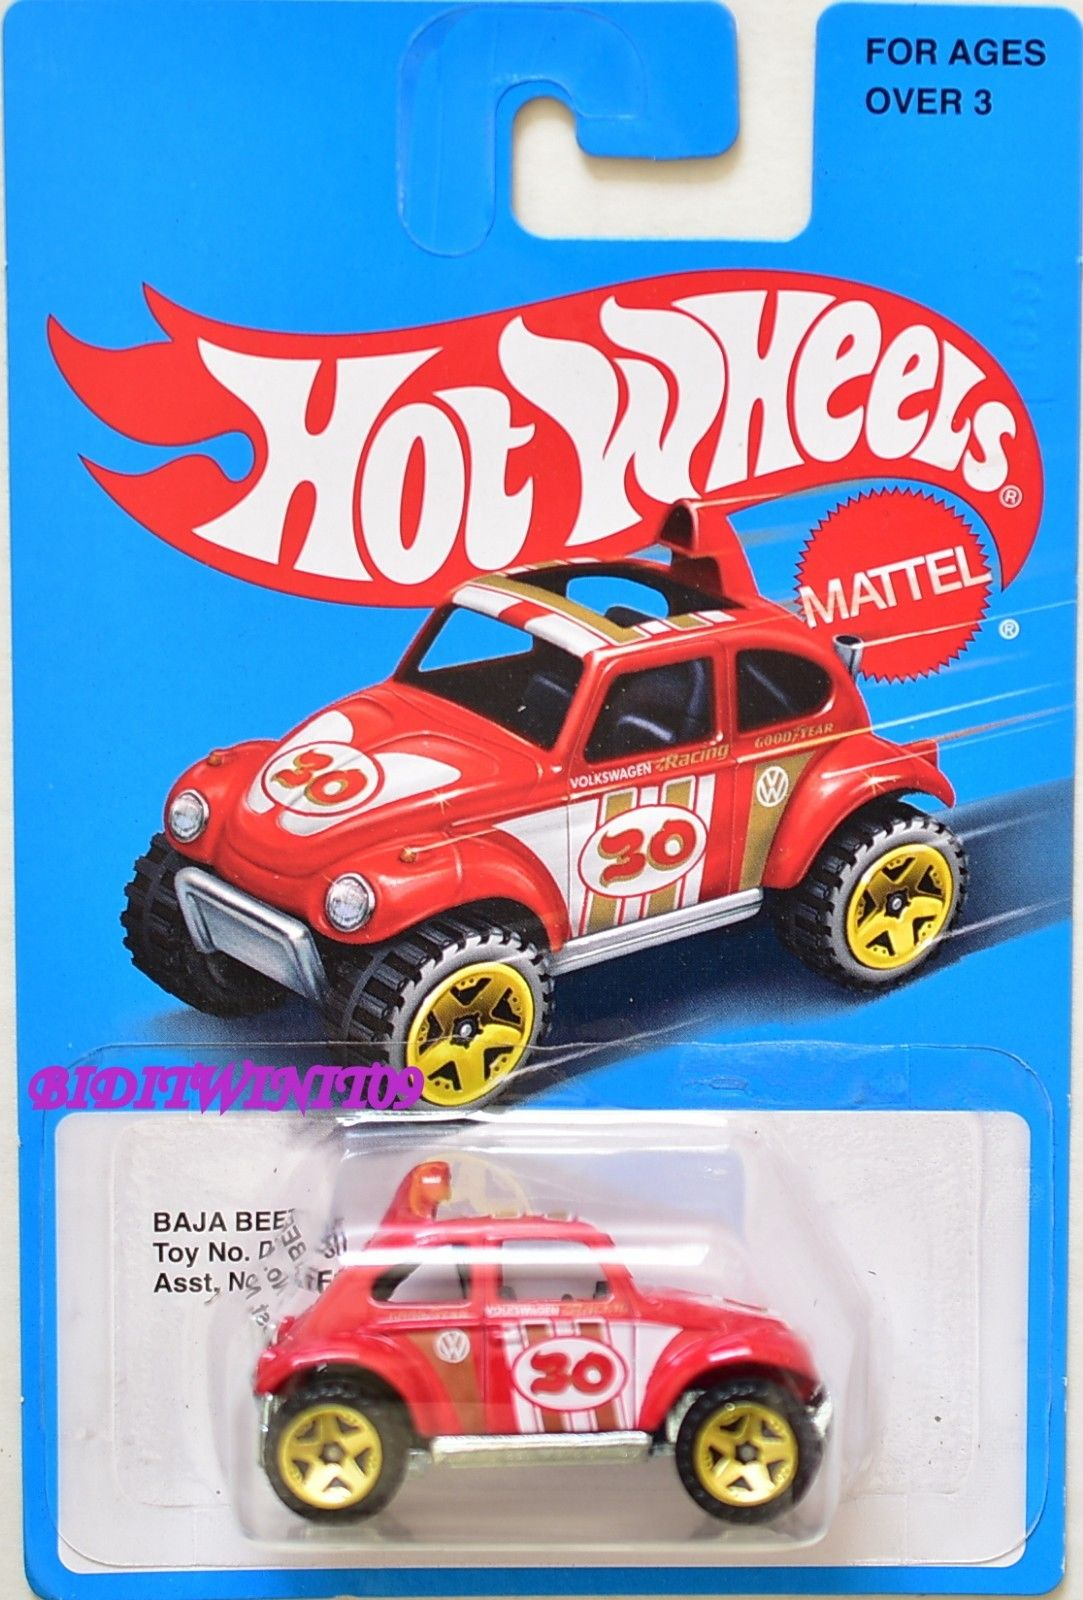 HOT WHEELS 2016 TARGET EXCLUSIVE BAJA BEETLE BLUE CARD SERIES